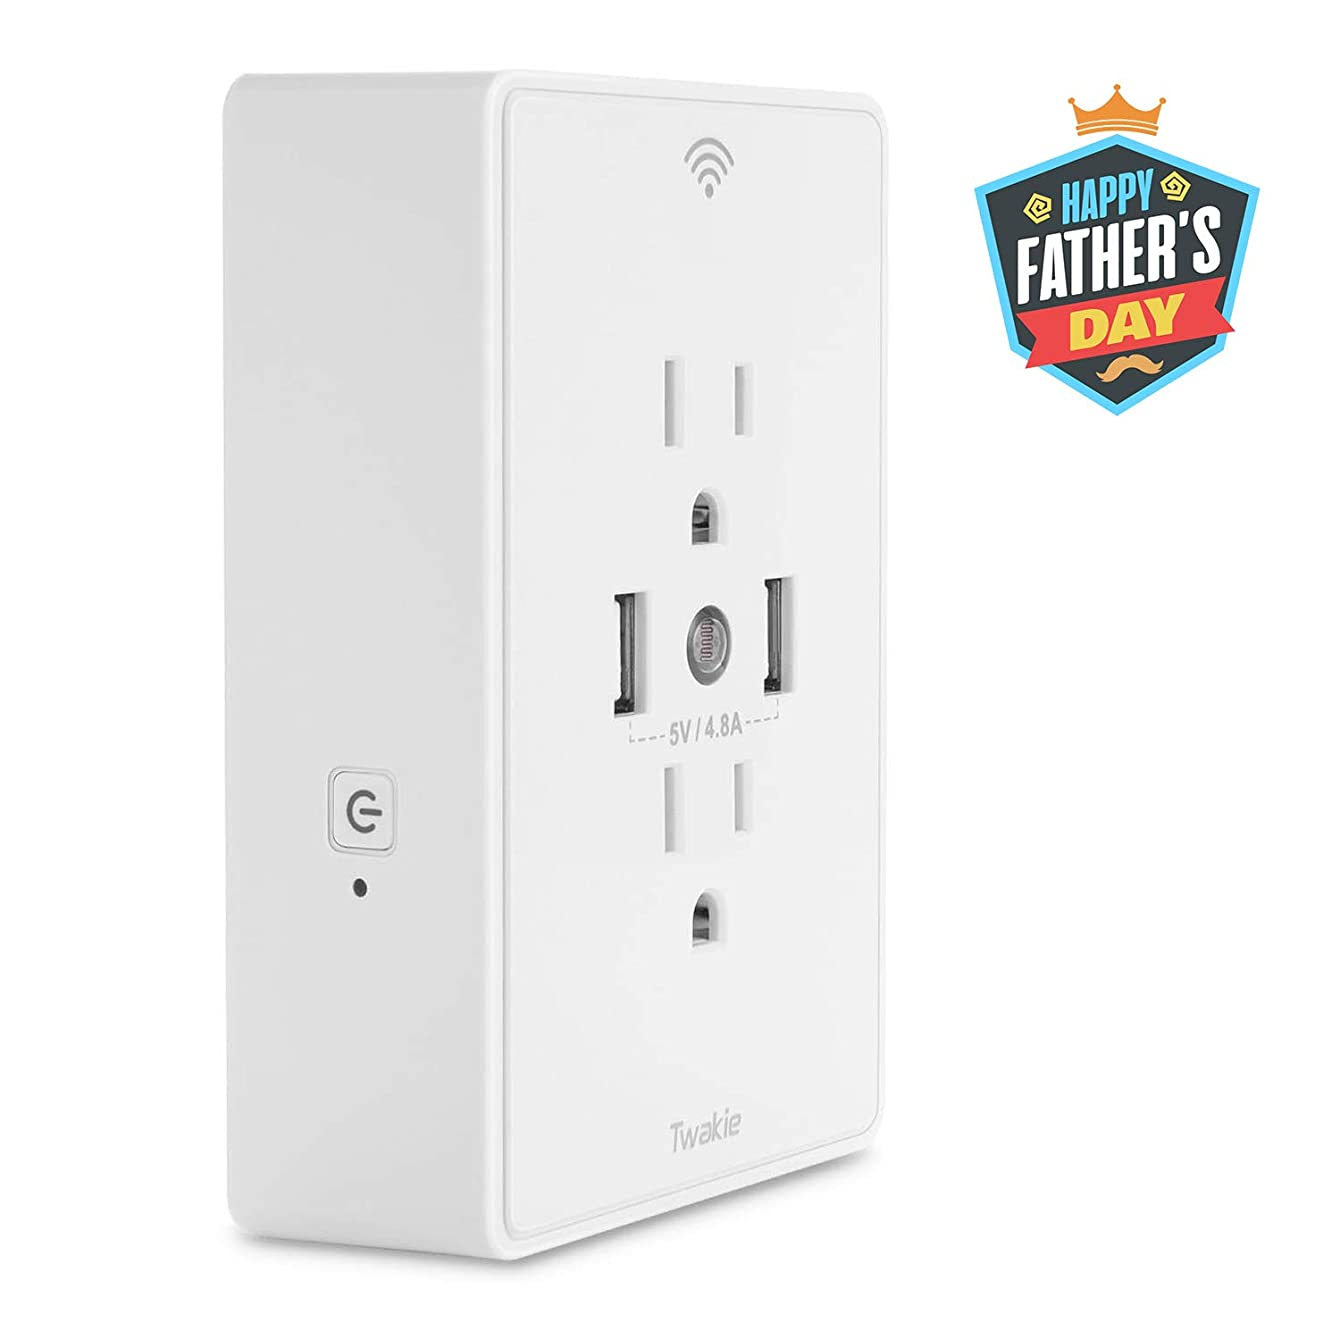 WiFi Smart Outlet Wall Plug 15 Amp Power Socket with 2 USB Ports 4.8A and Night Lights,On/Off Outlet Switch,Compatible with Alexa Echo and Google Home,No Hub Required, ETL Listed, White by Twakie